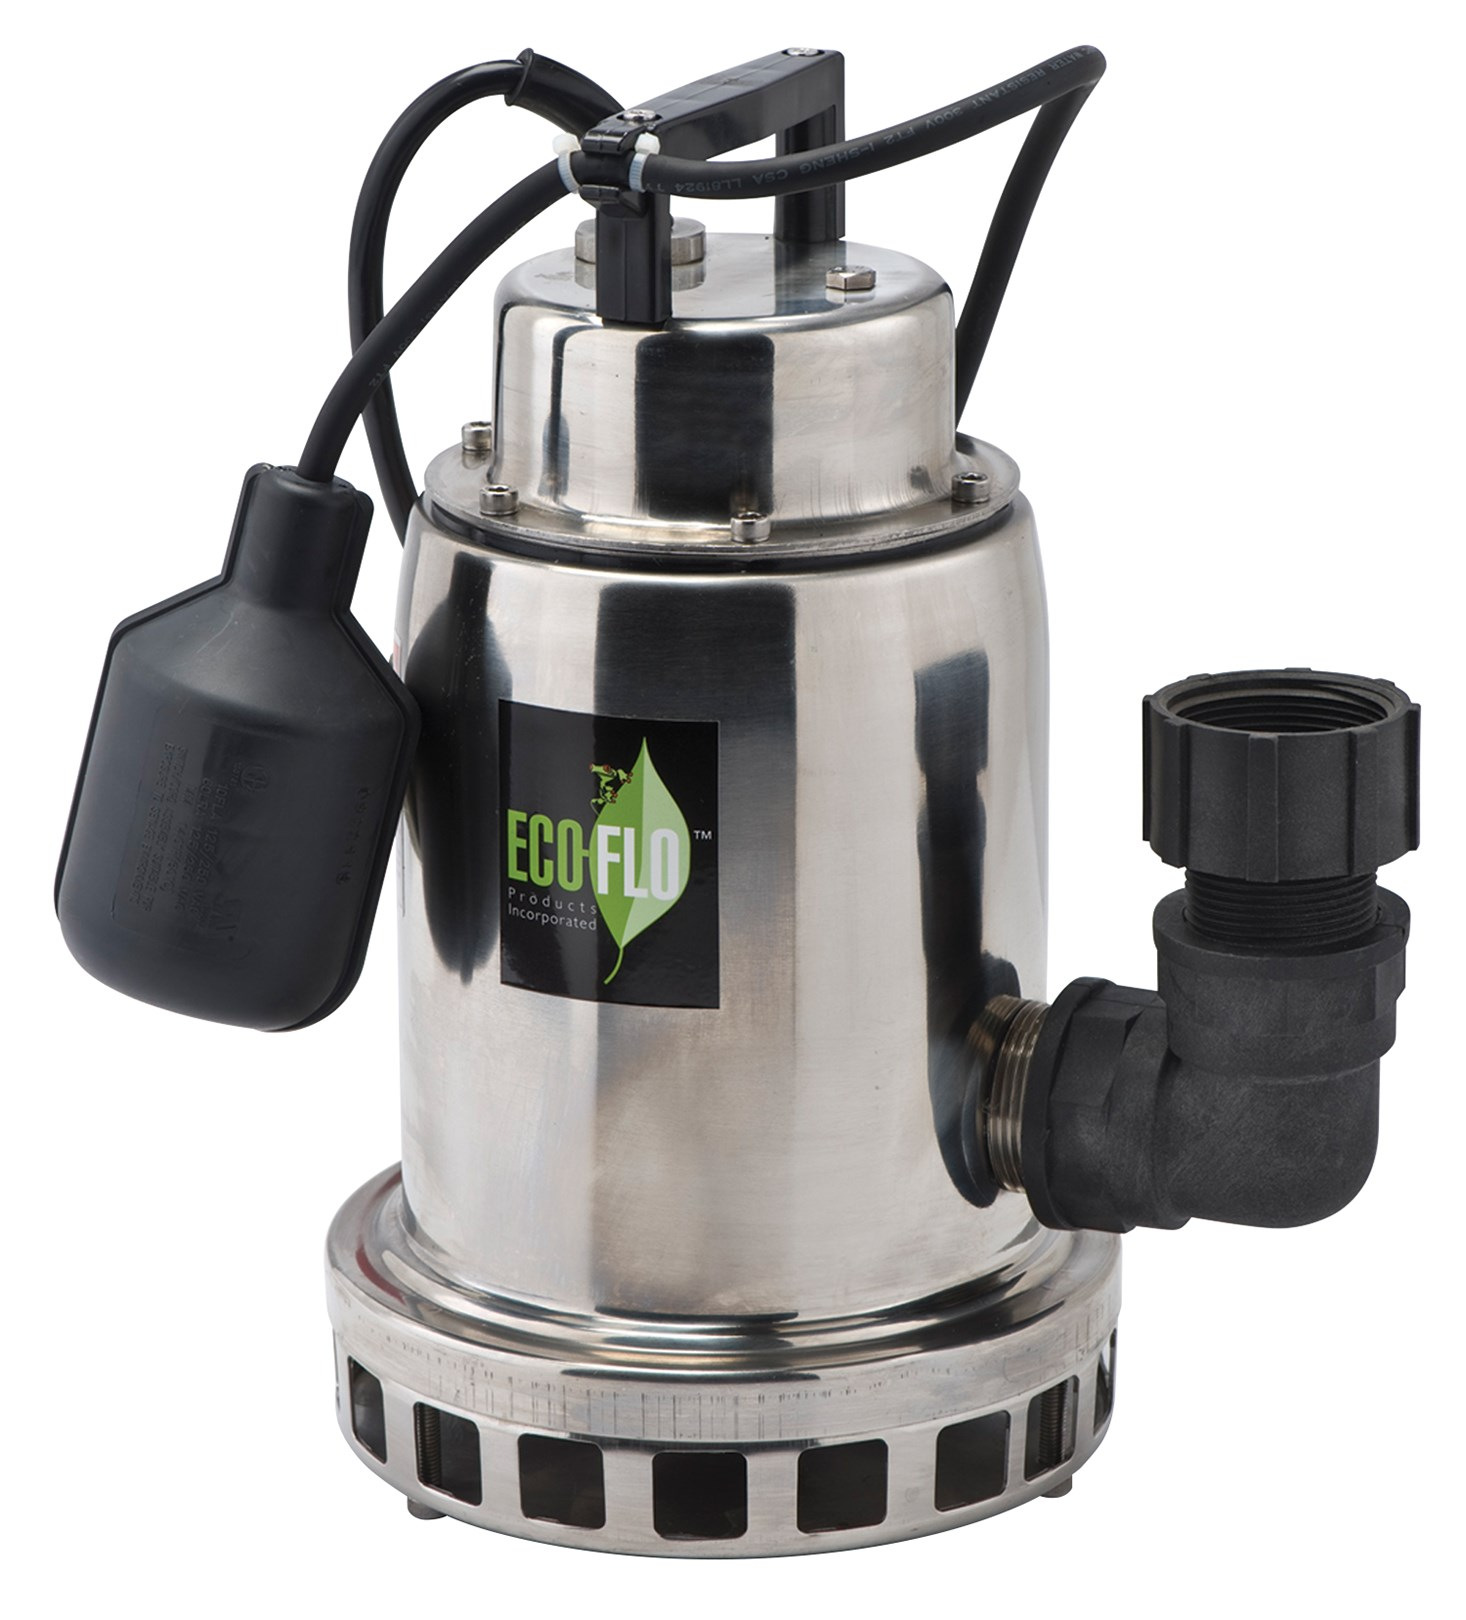 Eco Flo SEP50W 1/2 HP Stainless Steel Water Fountain Utility Pump